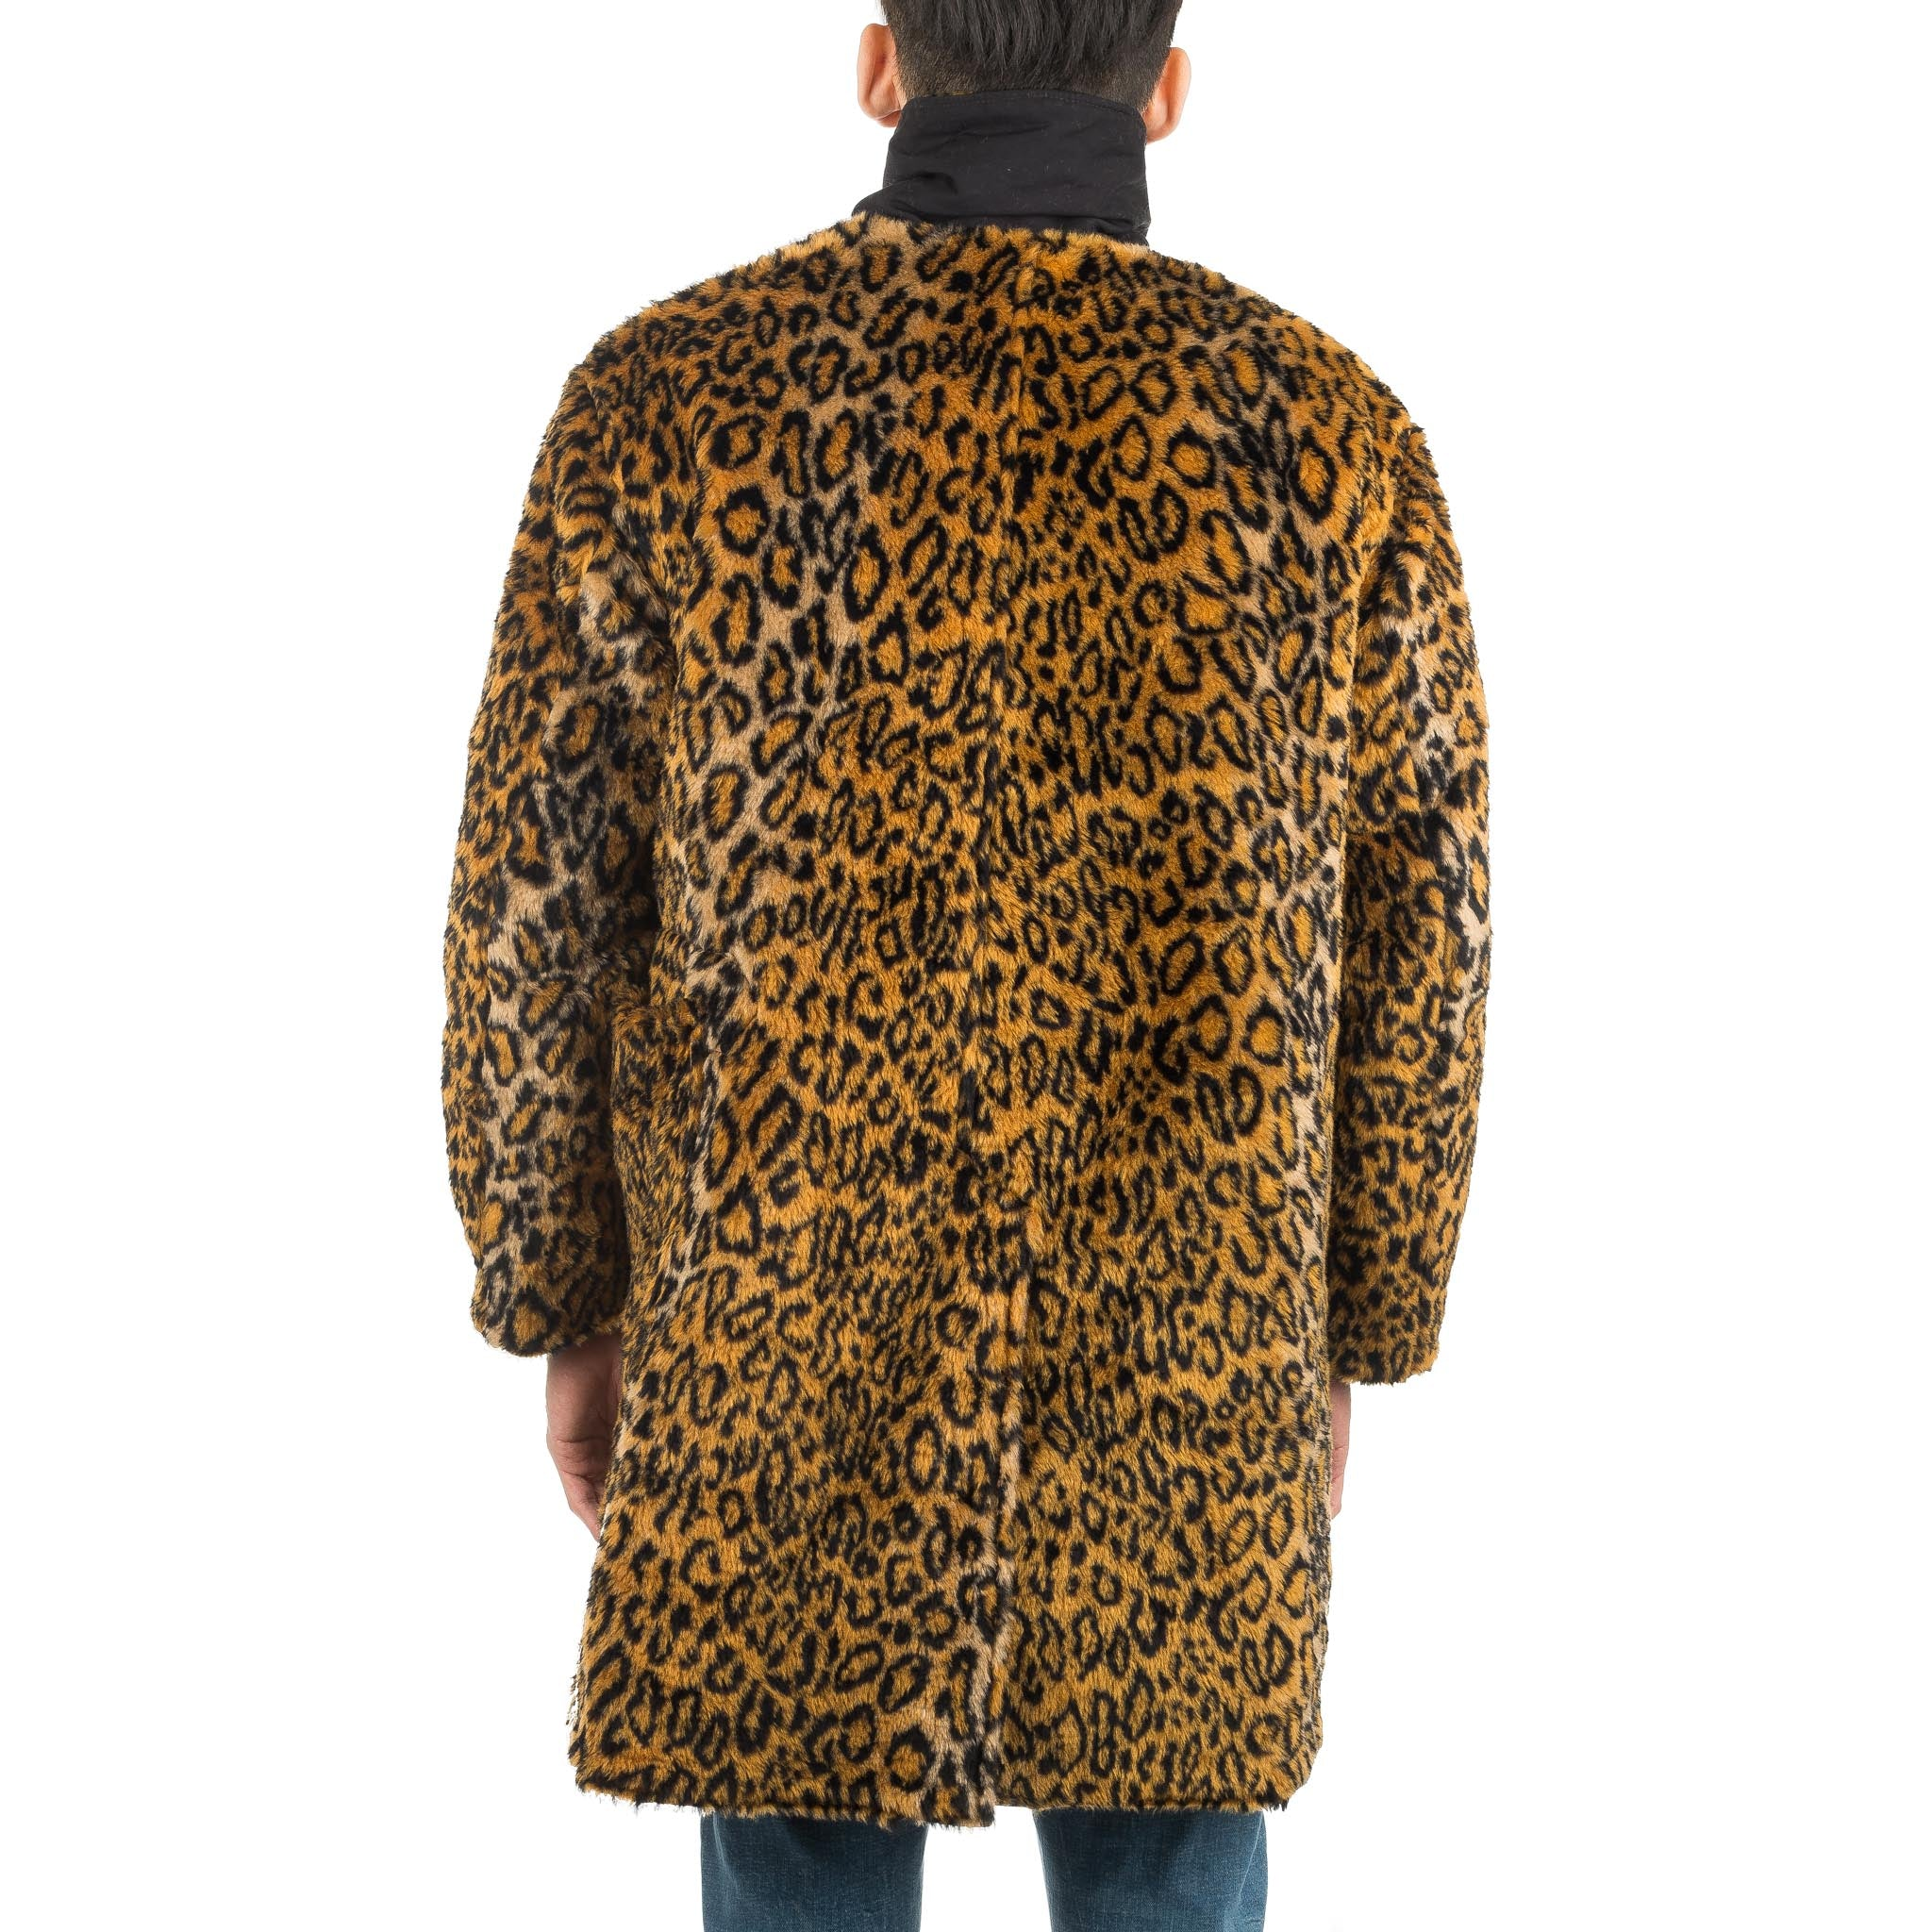 Shawl Collar Reversible Coat F8D1483D Black Cheetah Fur